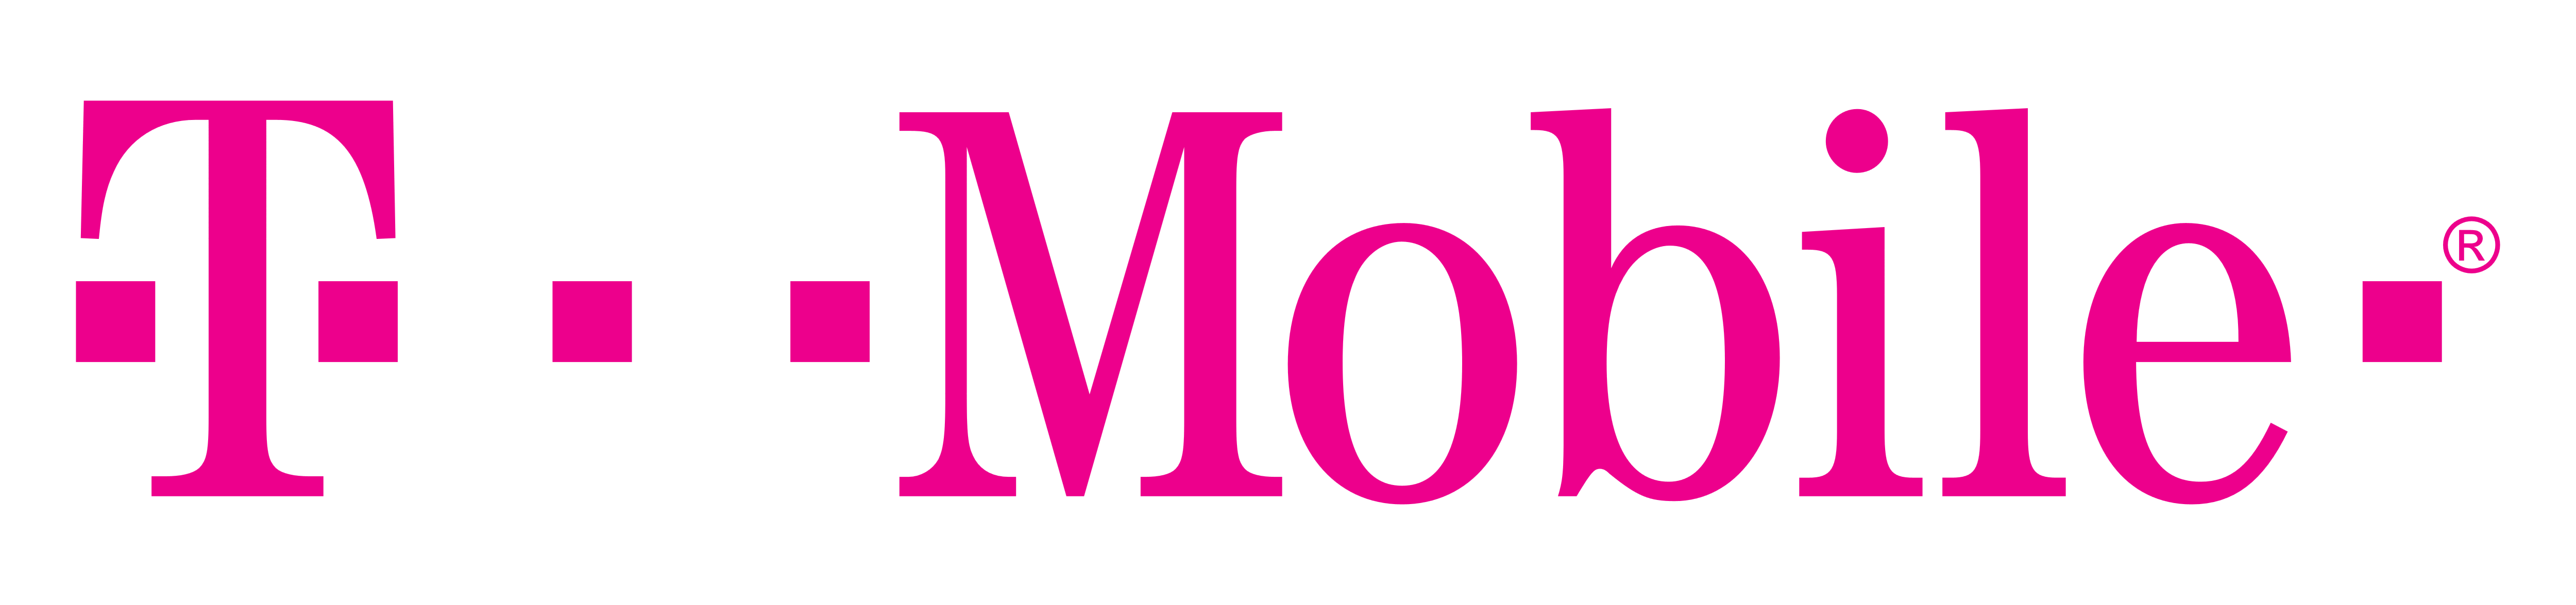 T Mobile Un Carrier (Kick back i.e bill credit 10$ per line for < 2GB data use) + All inclusive 160$ for 4 lines on T Mobile One (with bill credit 120 all inclusive)